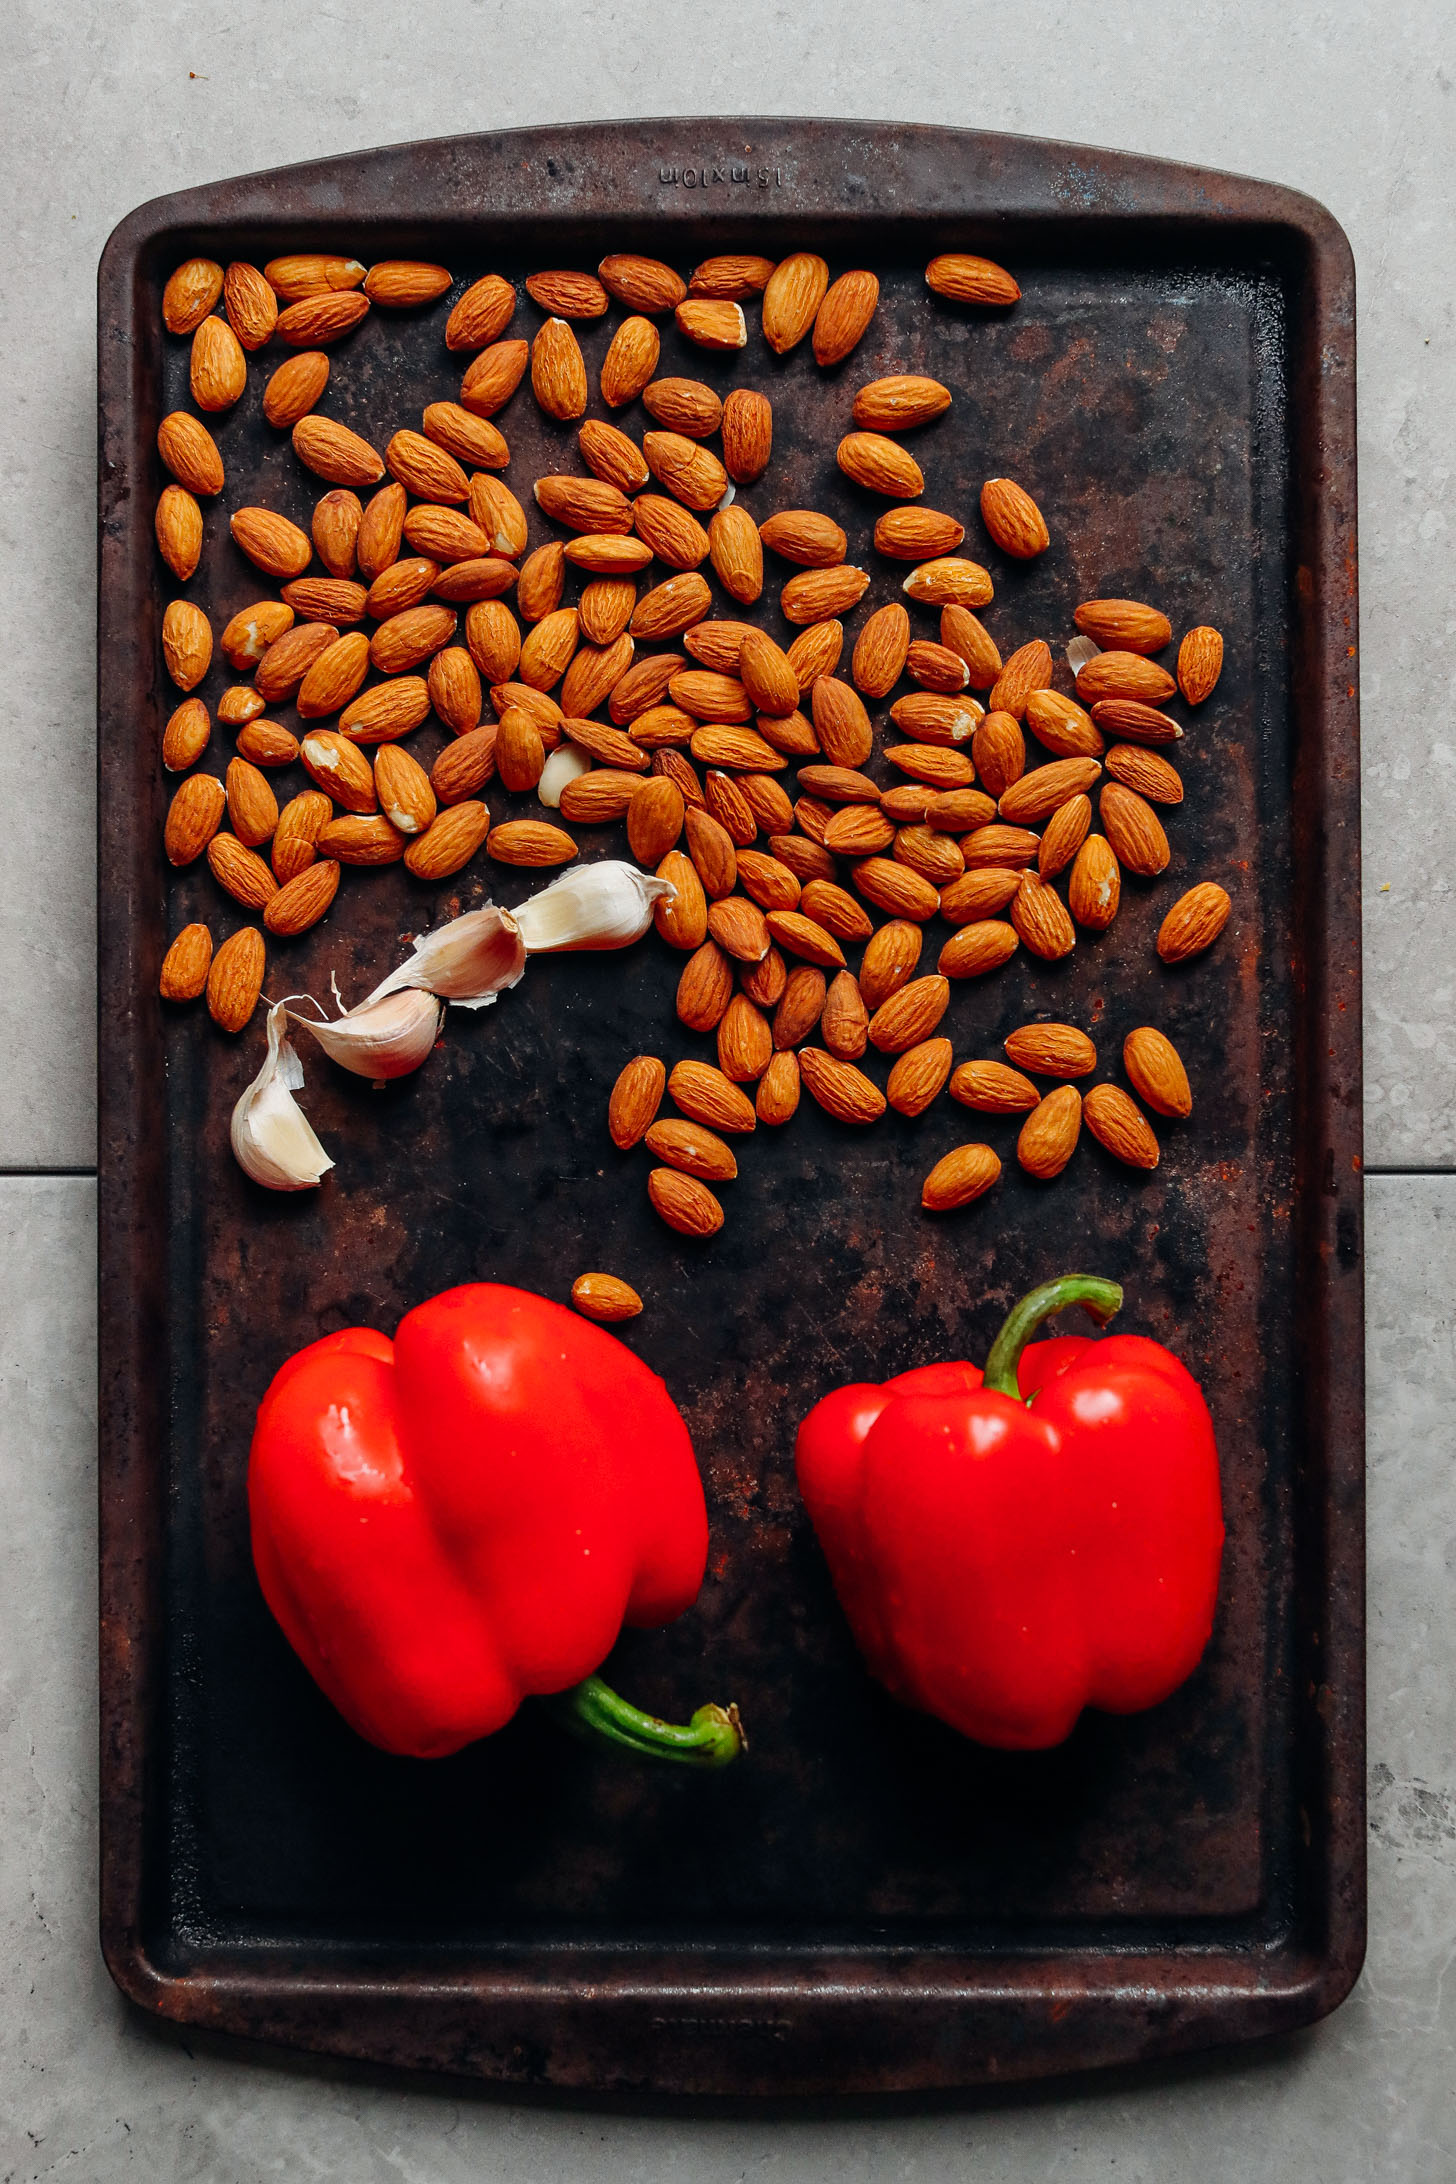 Baking sheet displaying almonds, red bell peppers, and garlic ready for roasting